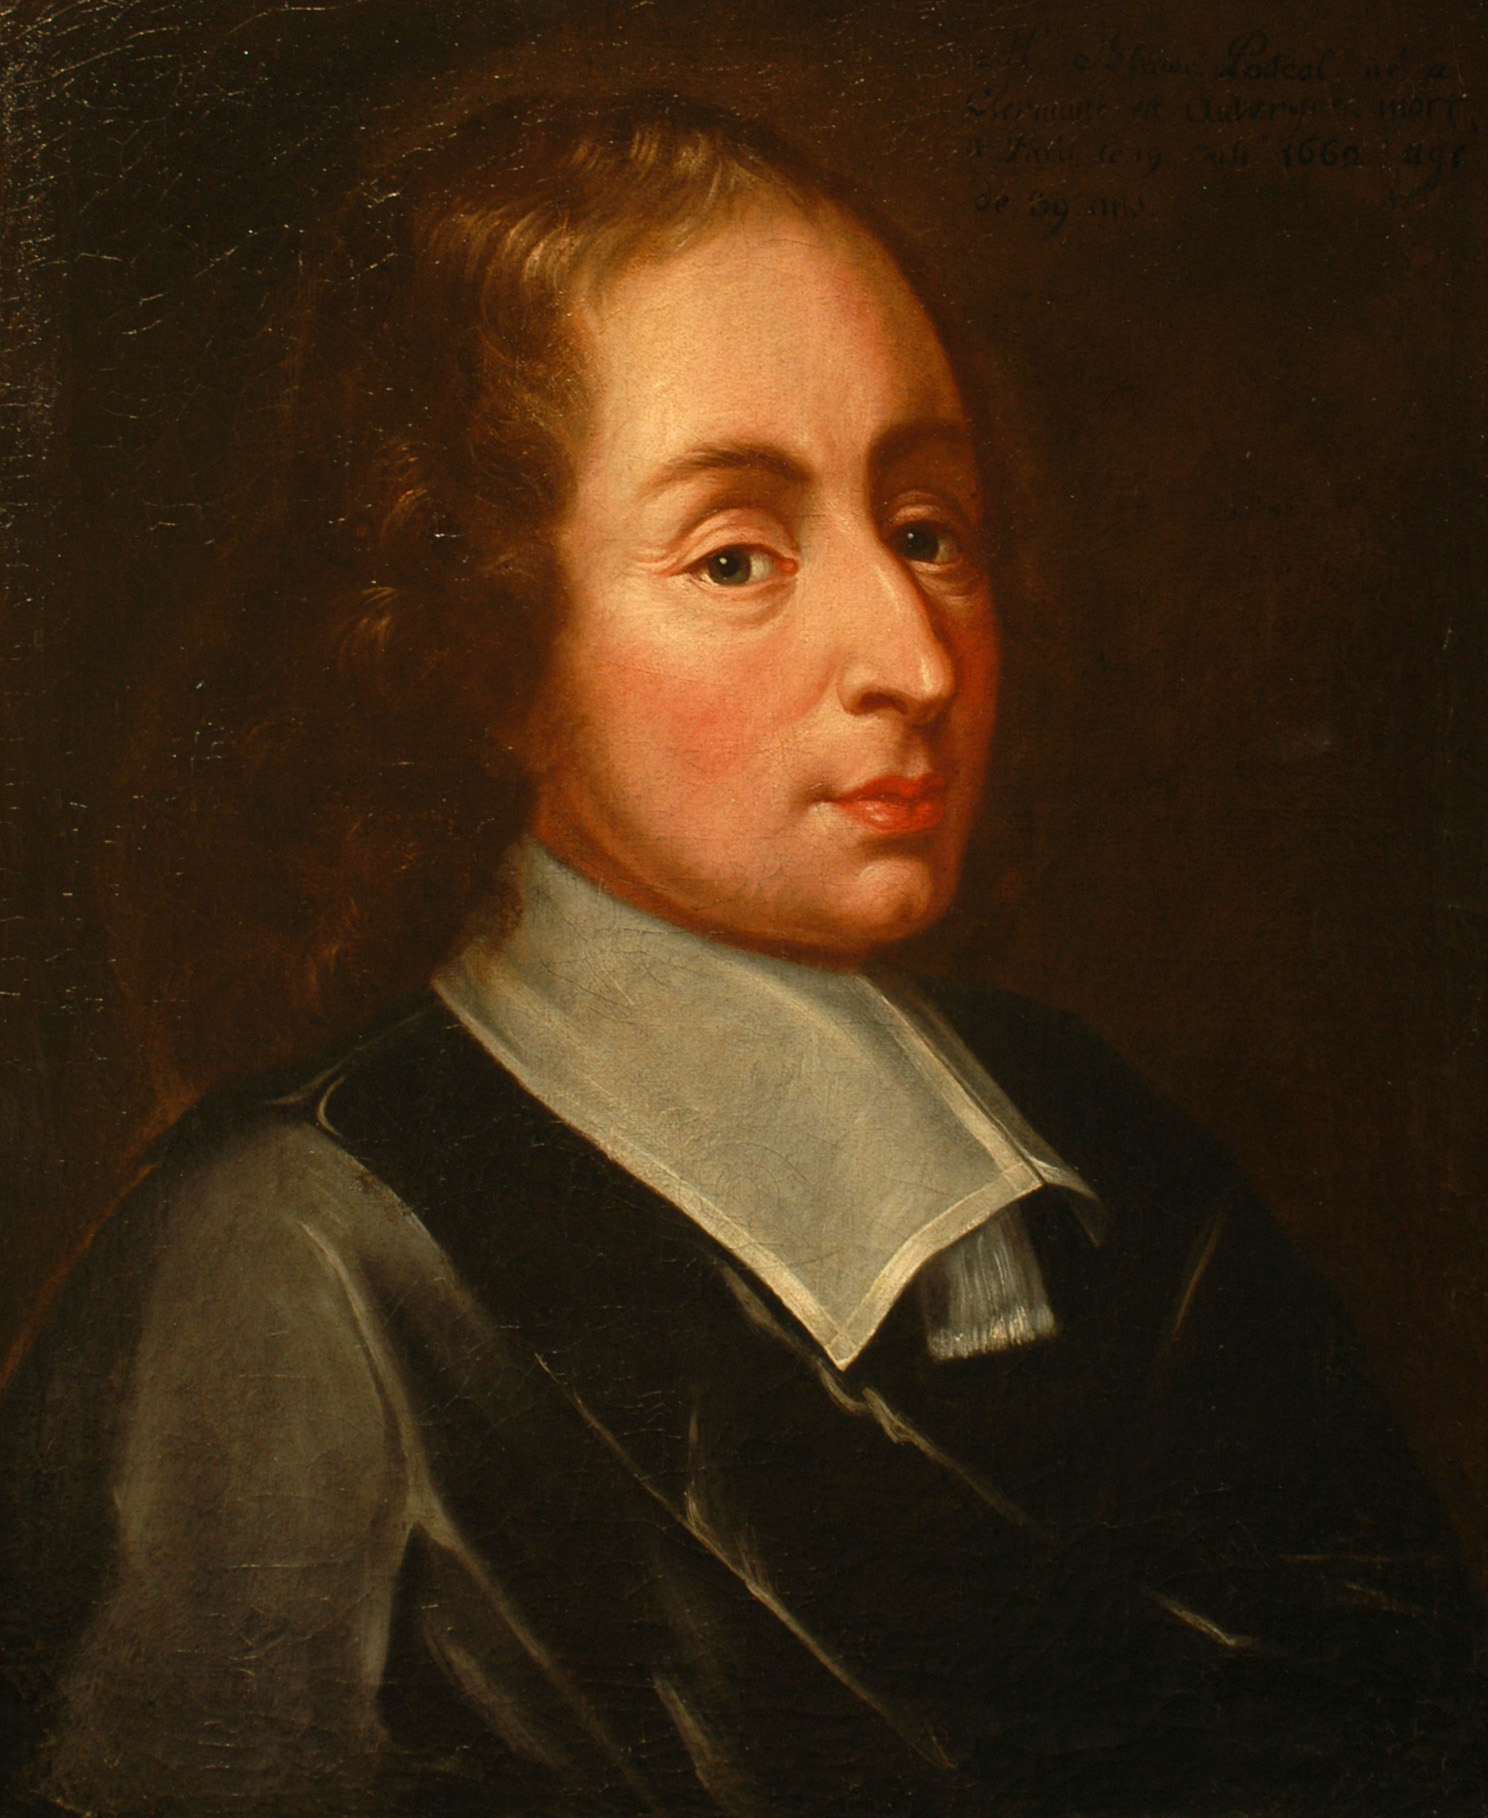 SPIRITUALITY SCIENCE - THE ART OF KNOWING : BLAISE PASCAL(1623 - 1662), FRENCH SCIENTIST AND RELIGIOUS PHILOSOPHER CLAIMED THAT MAN IS INFINITELY REMOVED FROM COMPREHENDING THE EXTREMES ; THE END OF THINGS AND THEIR BEGINNINGS ARE HIDDEN.